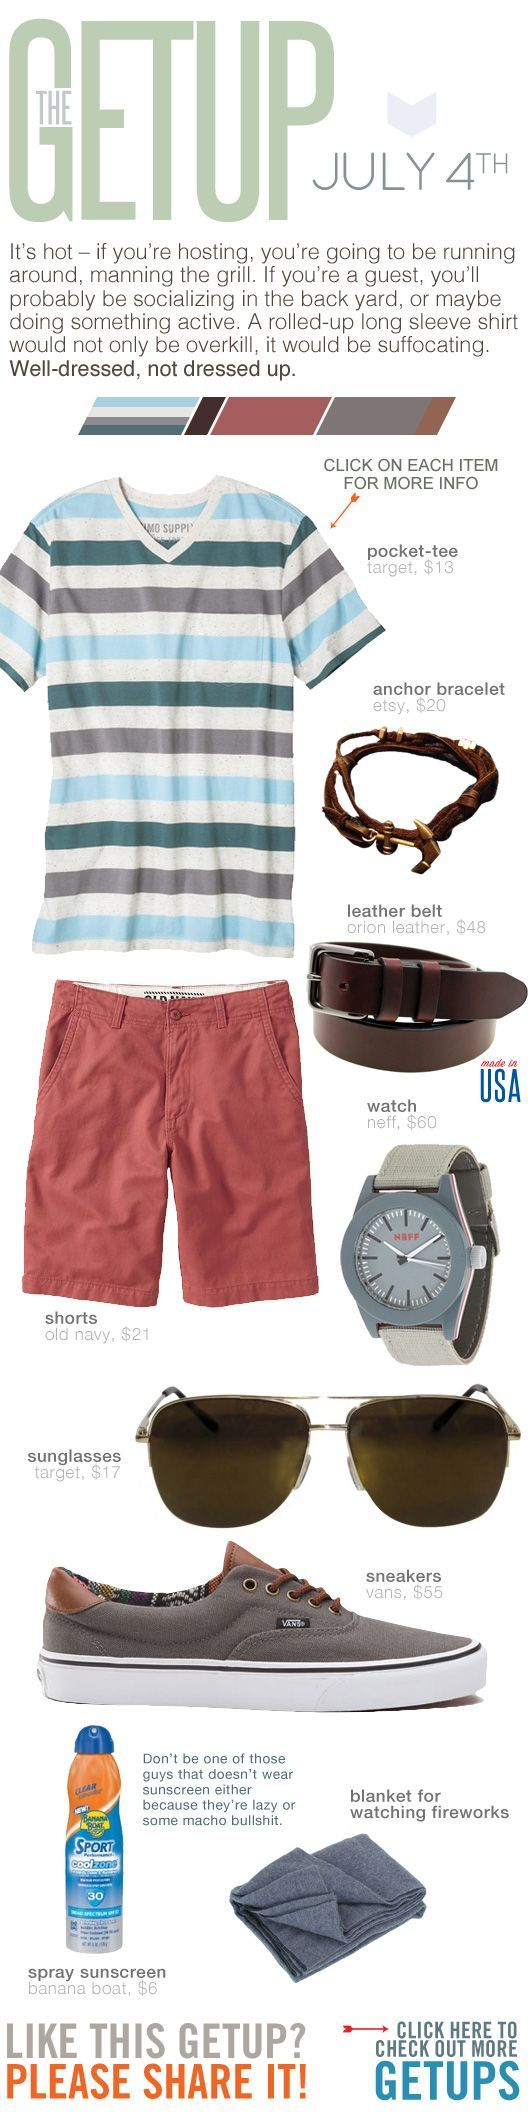 The Getup: July 4th - Primer